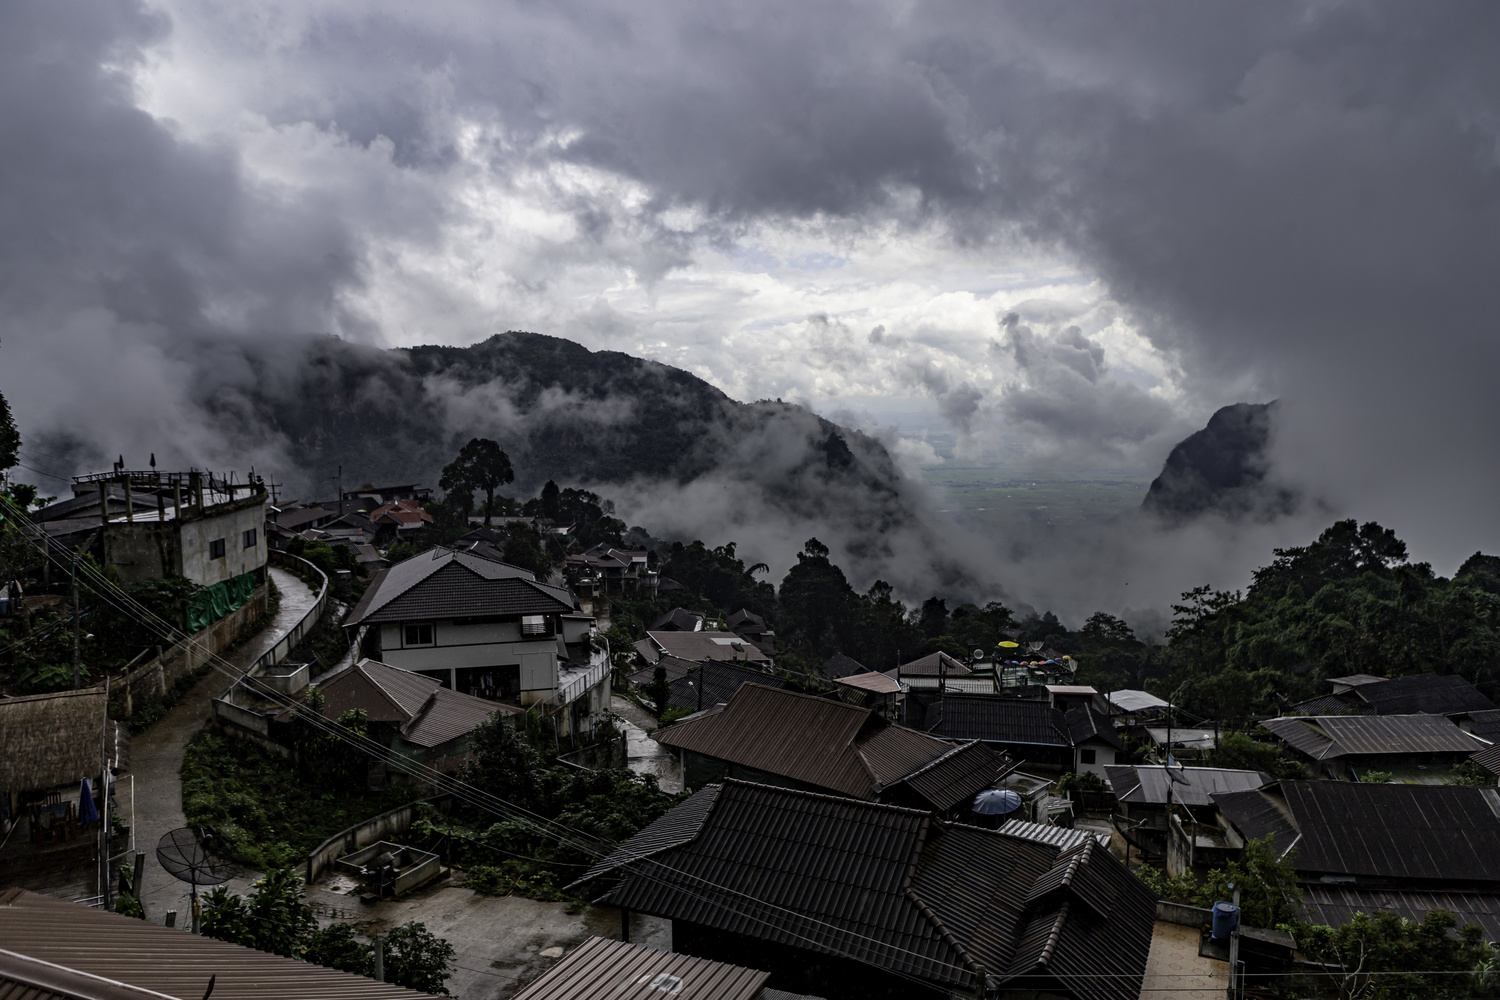 A break in the storm in Pha Hee, Thailand by Stephen Scully